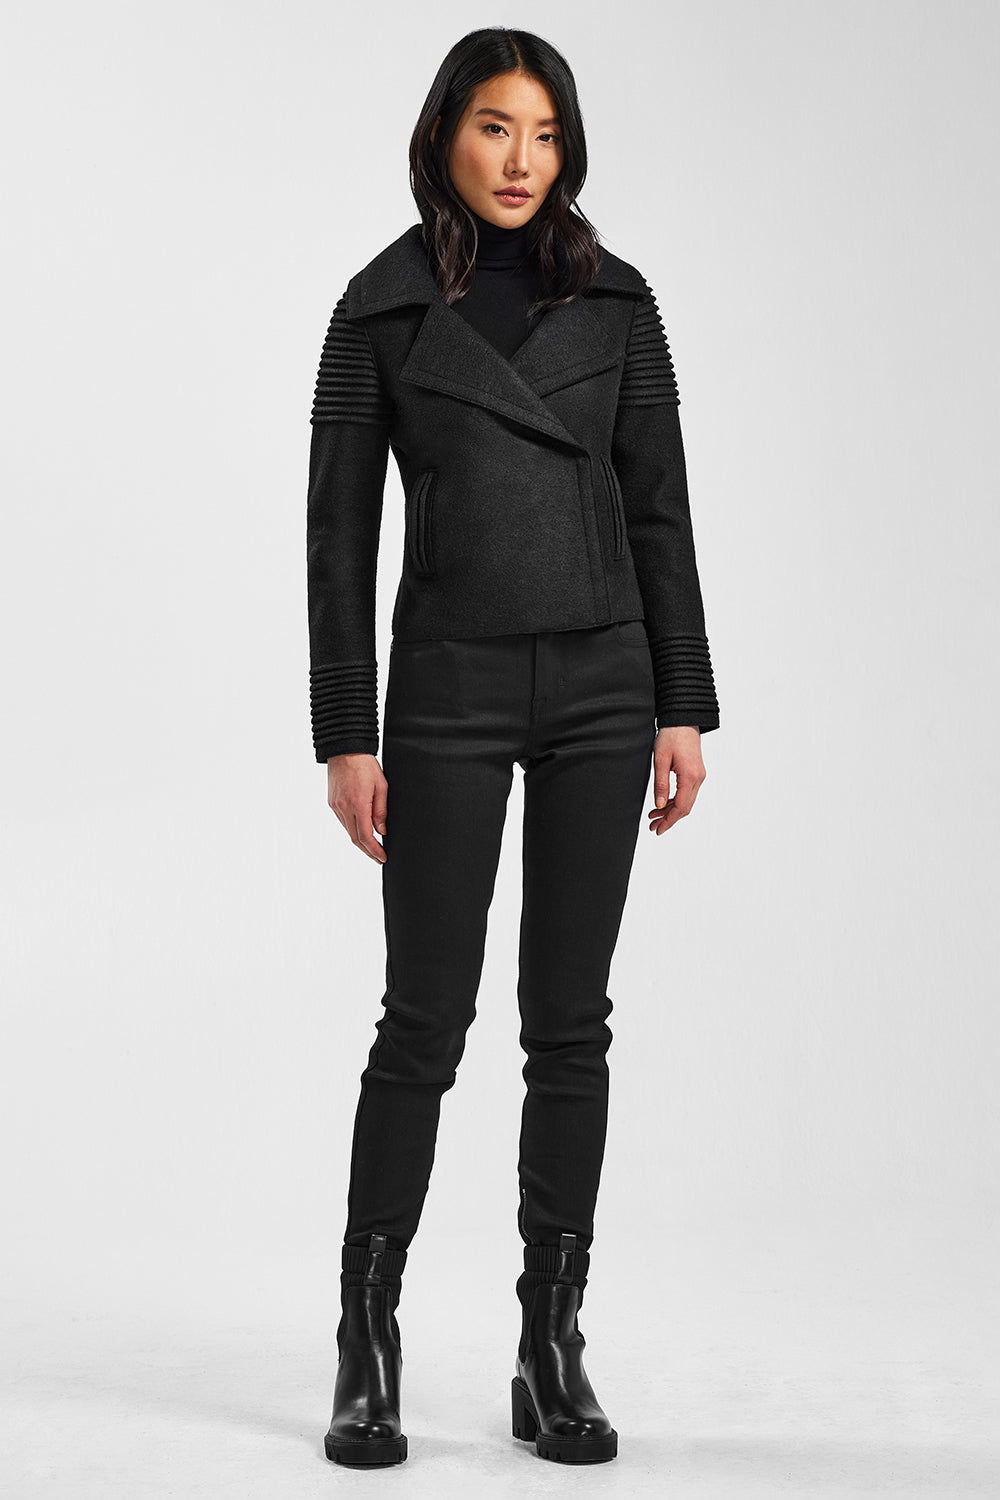 Sentaler Bomber Jacket with Ribbed Shoulders and Cuffs featured in Superfine Alpaca and available in Black. Seen from front.